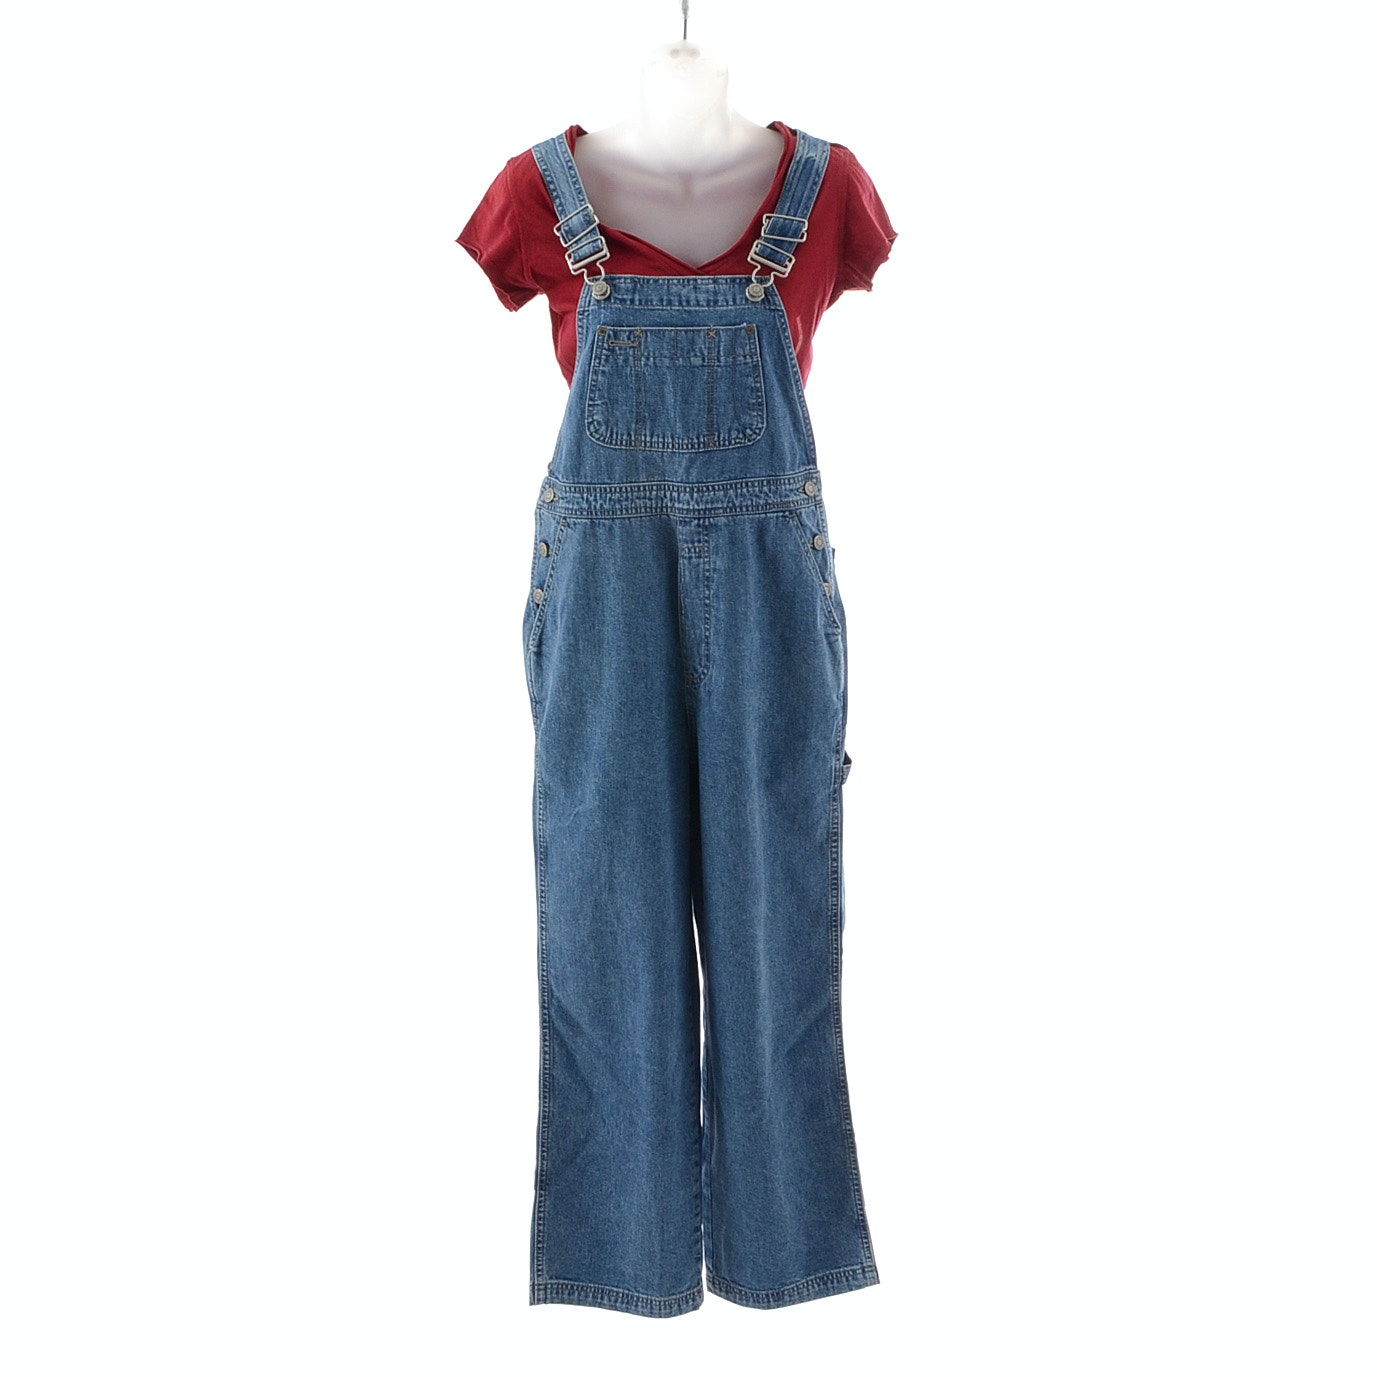 "Gap ""Red"" T-shirt and Overalls"